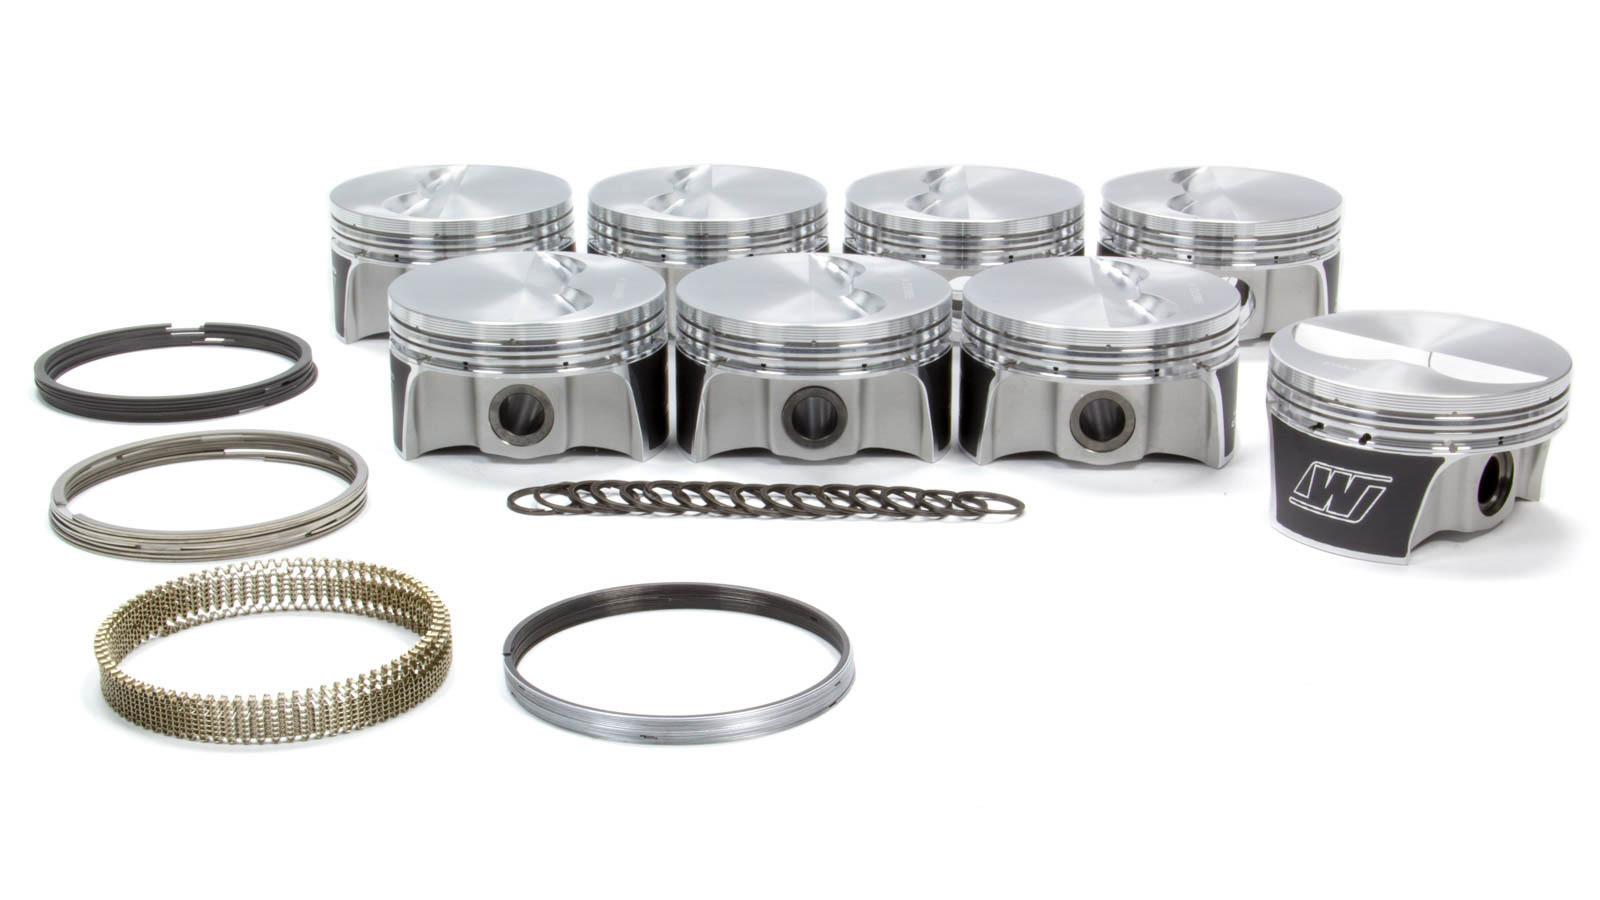 Wiseco K0003X3 Piston and Ring, Strutted High Strength, Forged, 4.030 in Bore, 1.2 x 1.2 x 3.0 mm Ring Groove, Minus 5.7 cc, Small Block Chevy, Kit